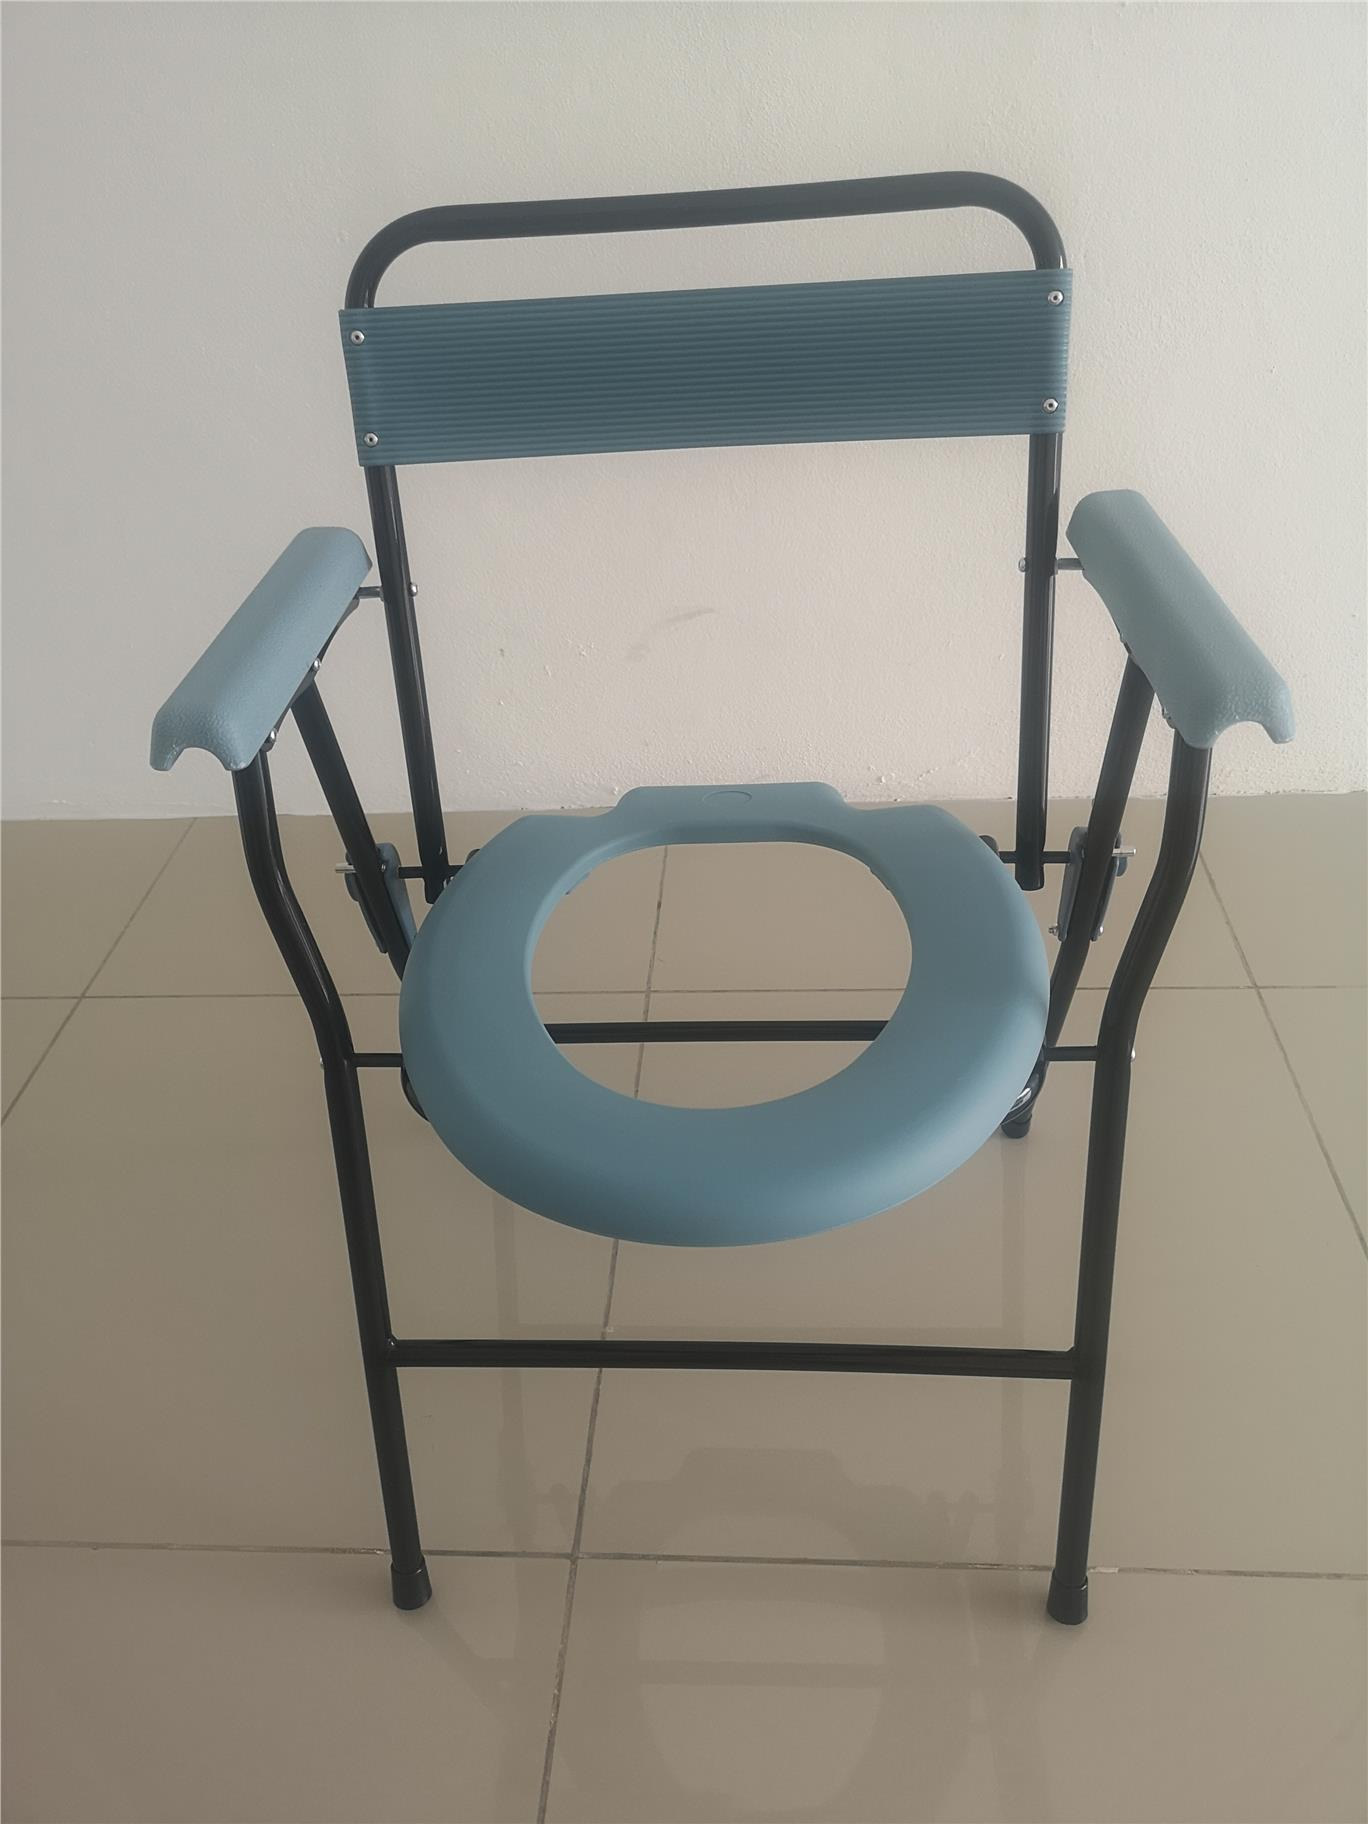 Foding commode with backrest and chamber pot di Bukit Mertajam